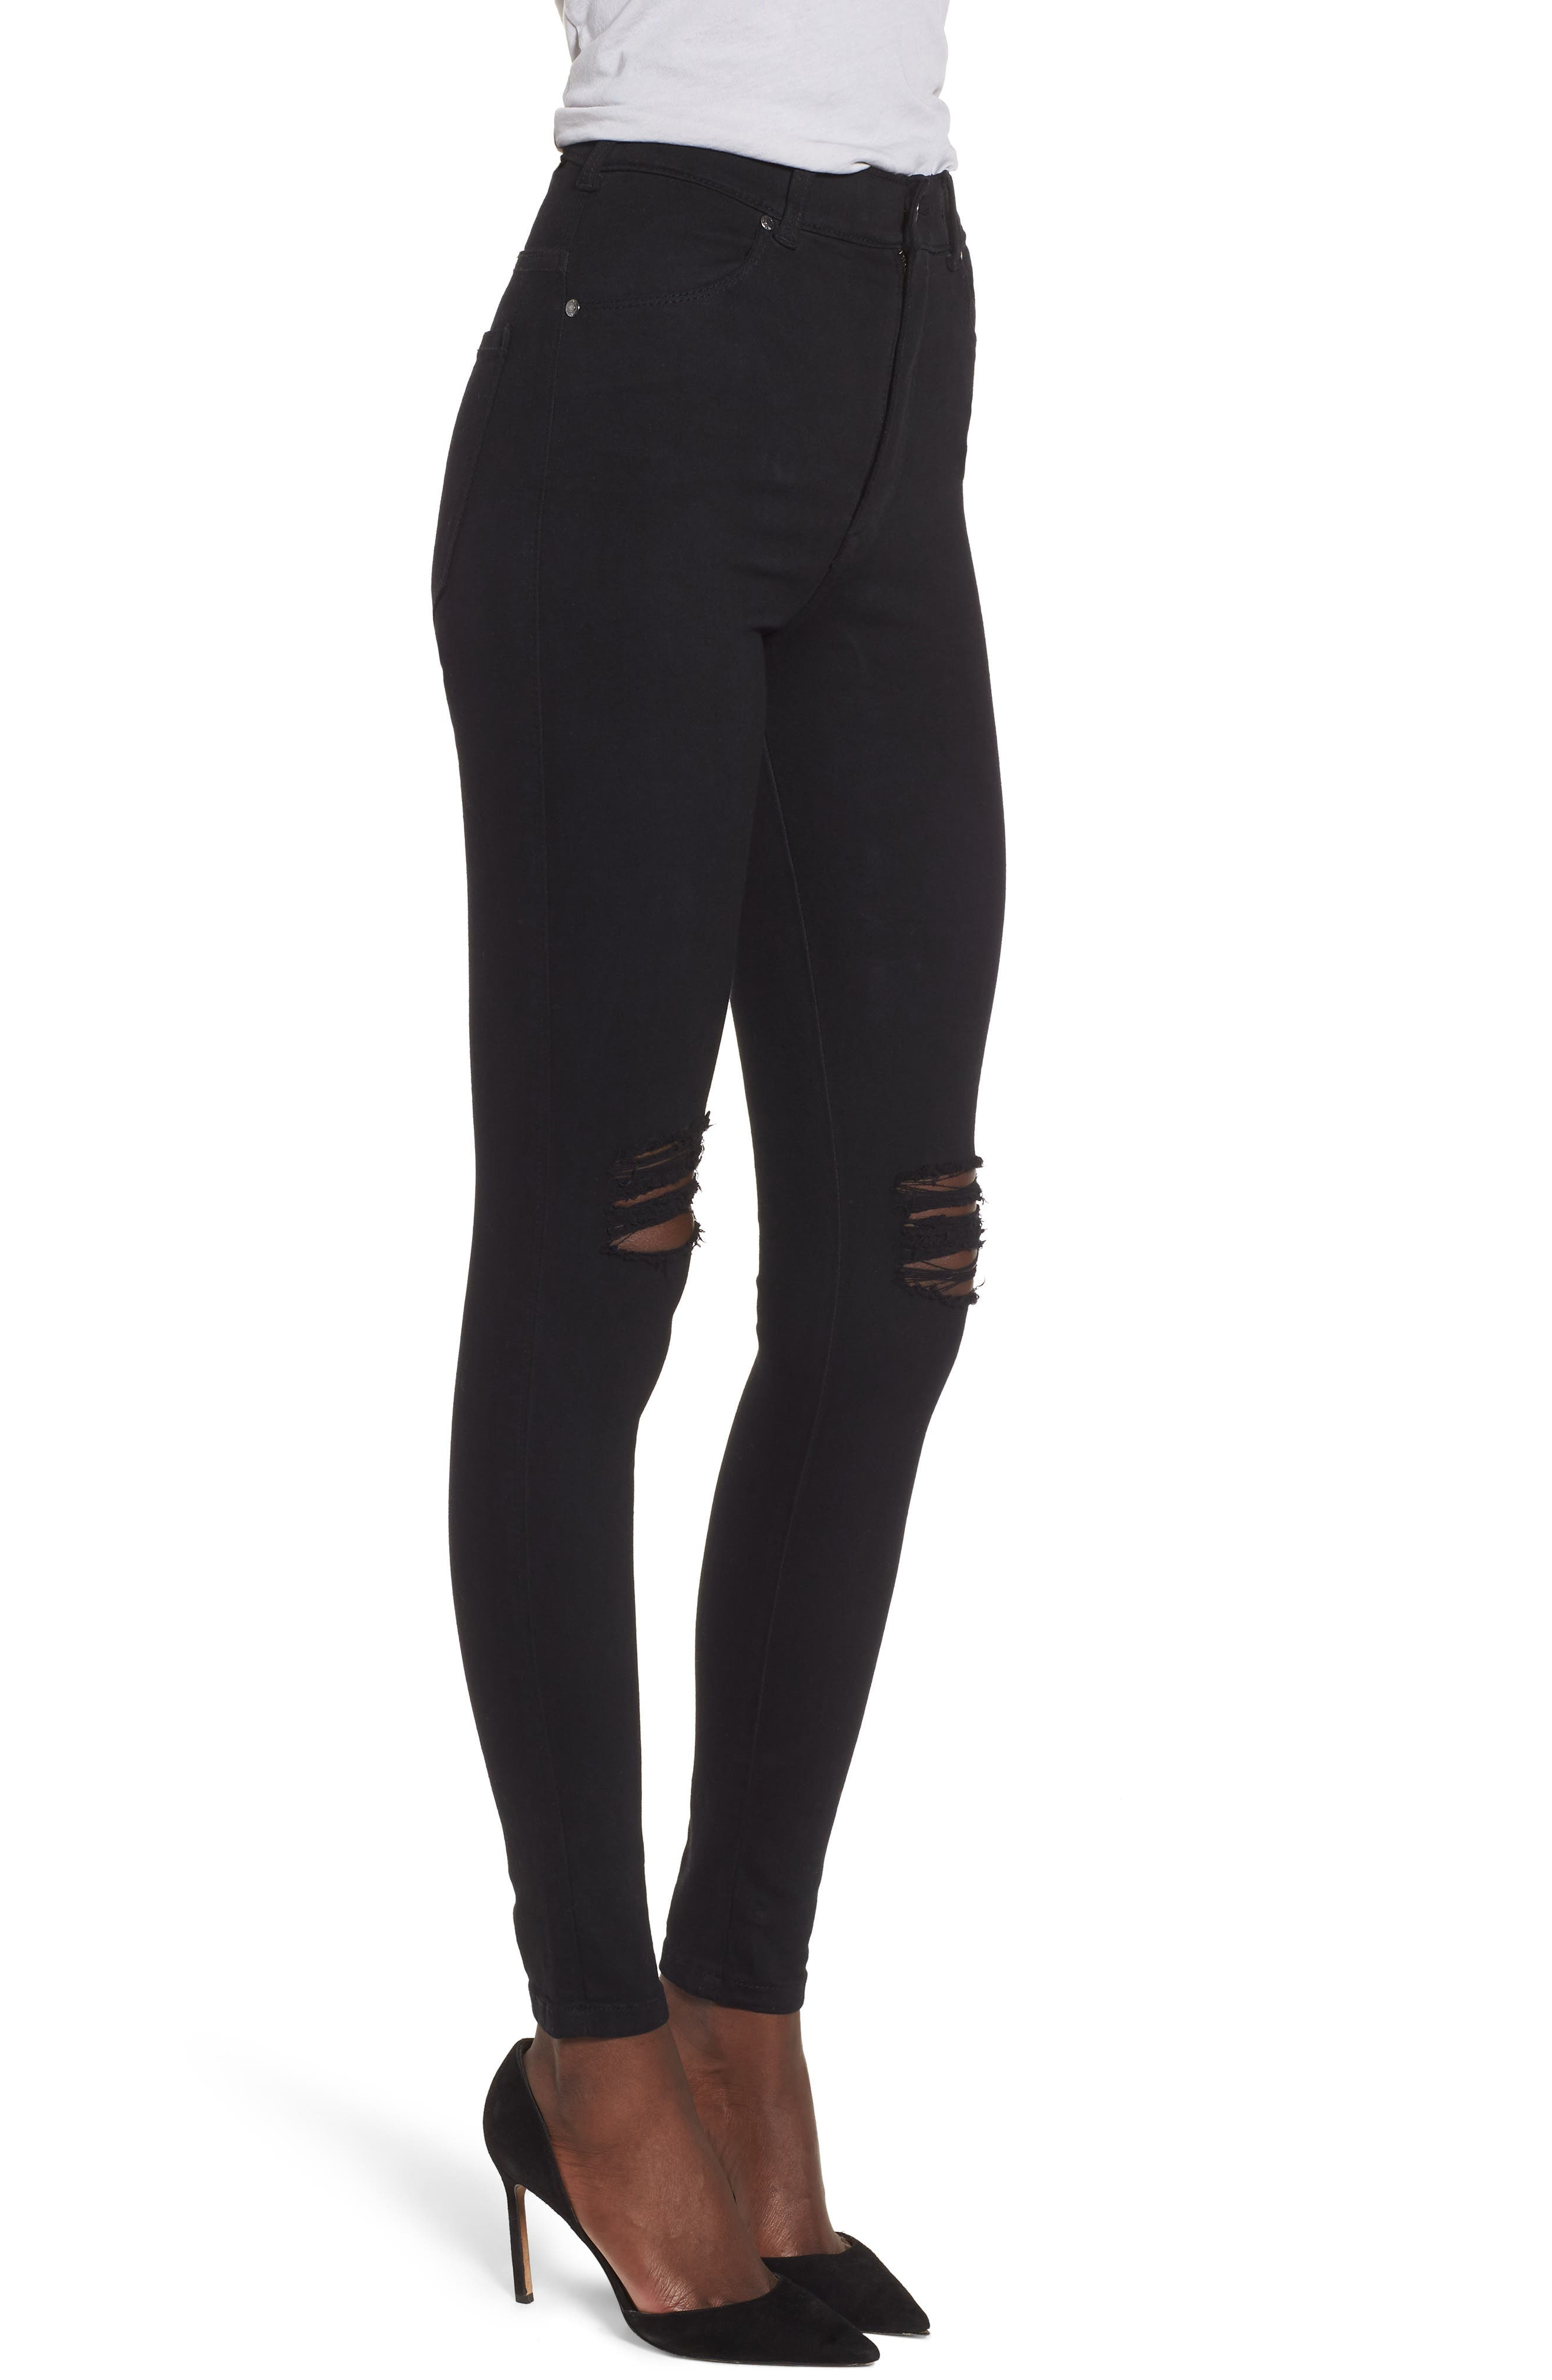 Moxy Ripped Knee Skinny Jeans,                             Alternate thumbnail 3, color,                             003